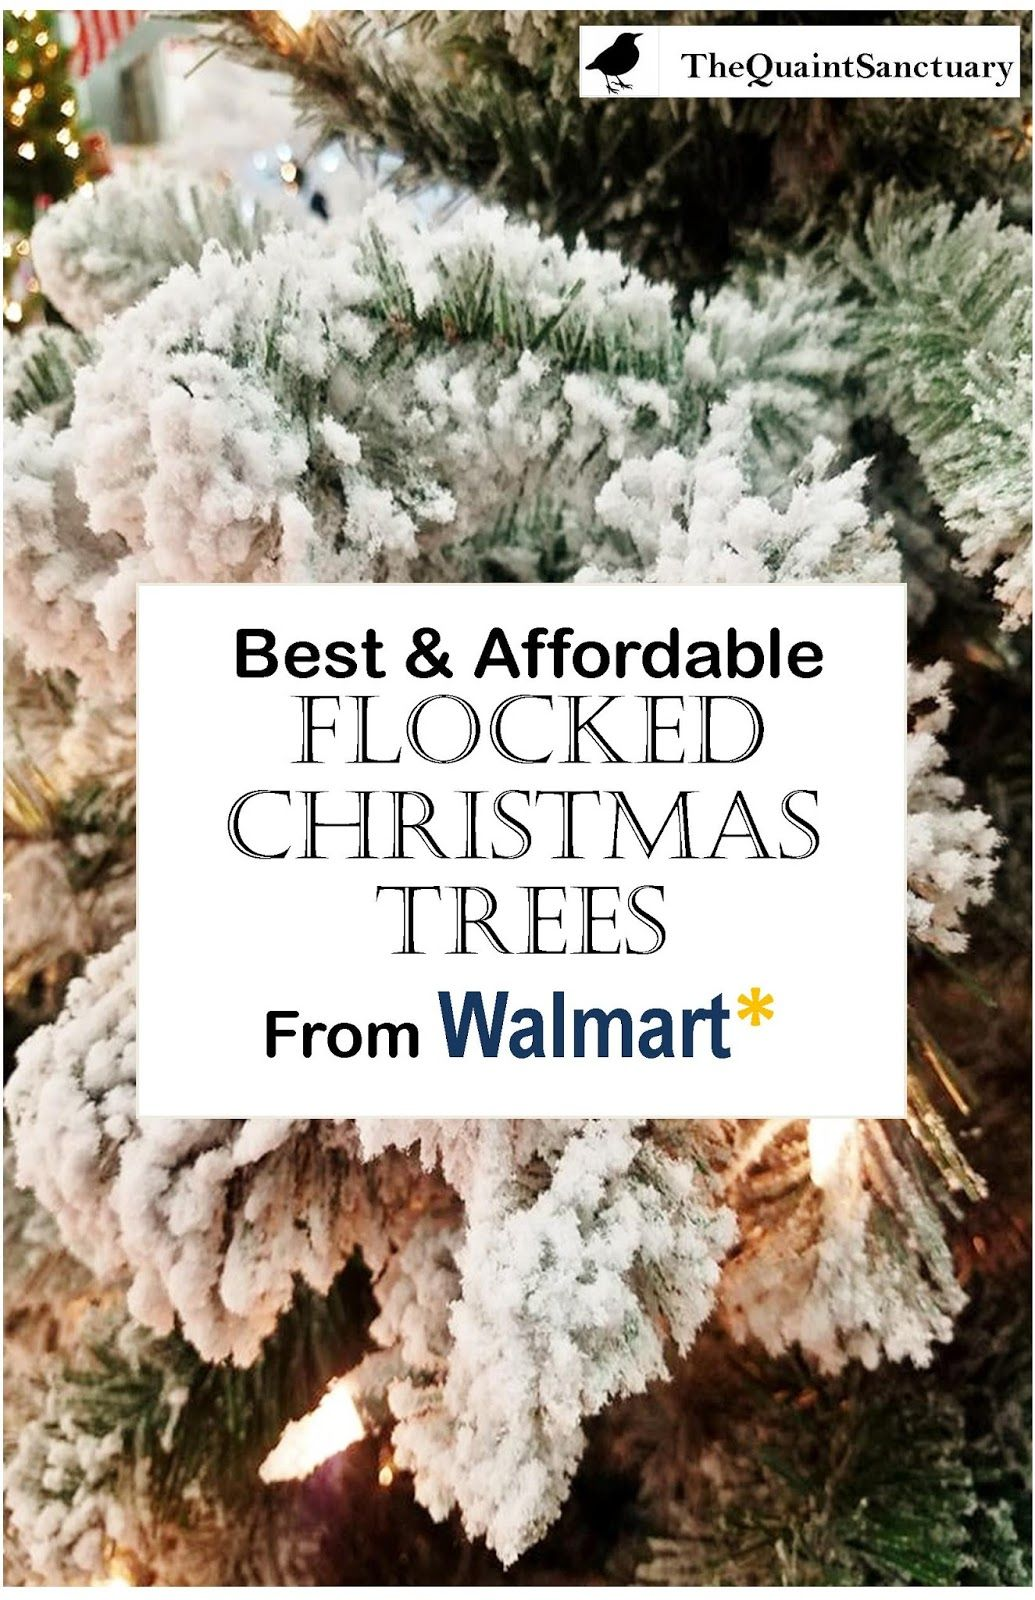 Best Affordable Flocked Christmas Trees From Walmart Walmart Christmas Trees Flocked Christmas Trees Walmart Flocked Christmas Trees